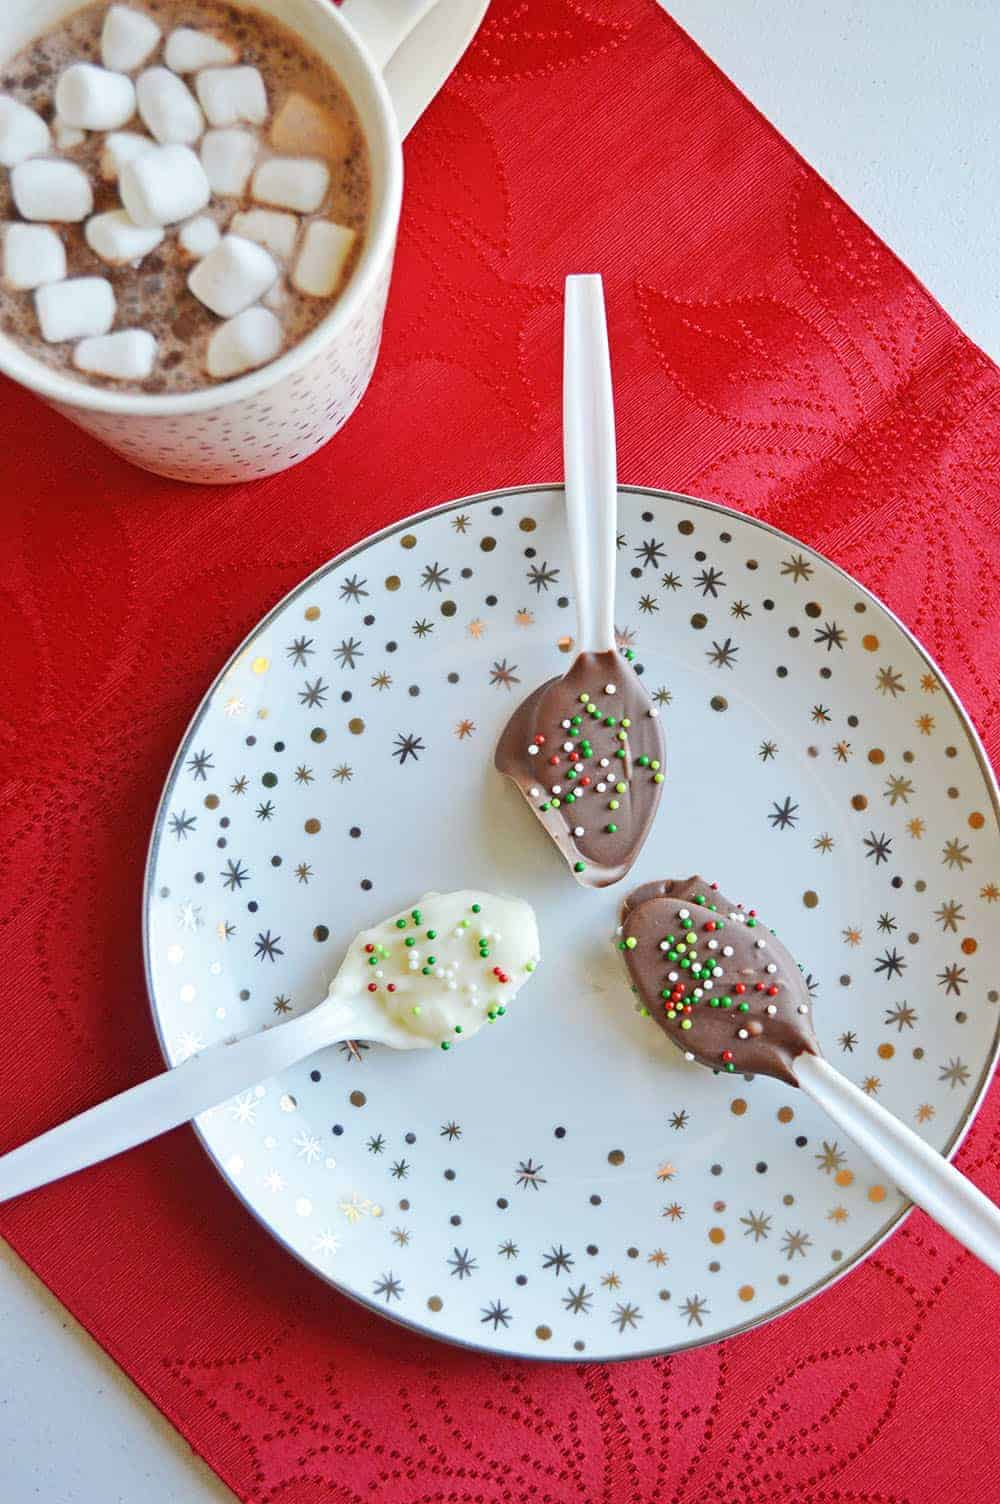 Easy To Make Chocolate Spoons